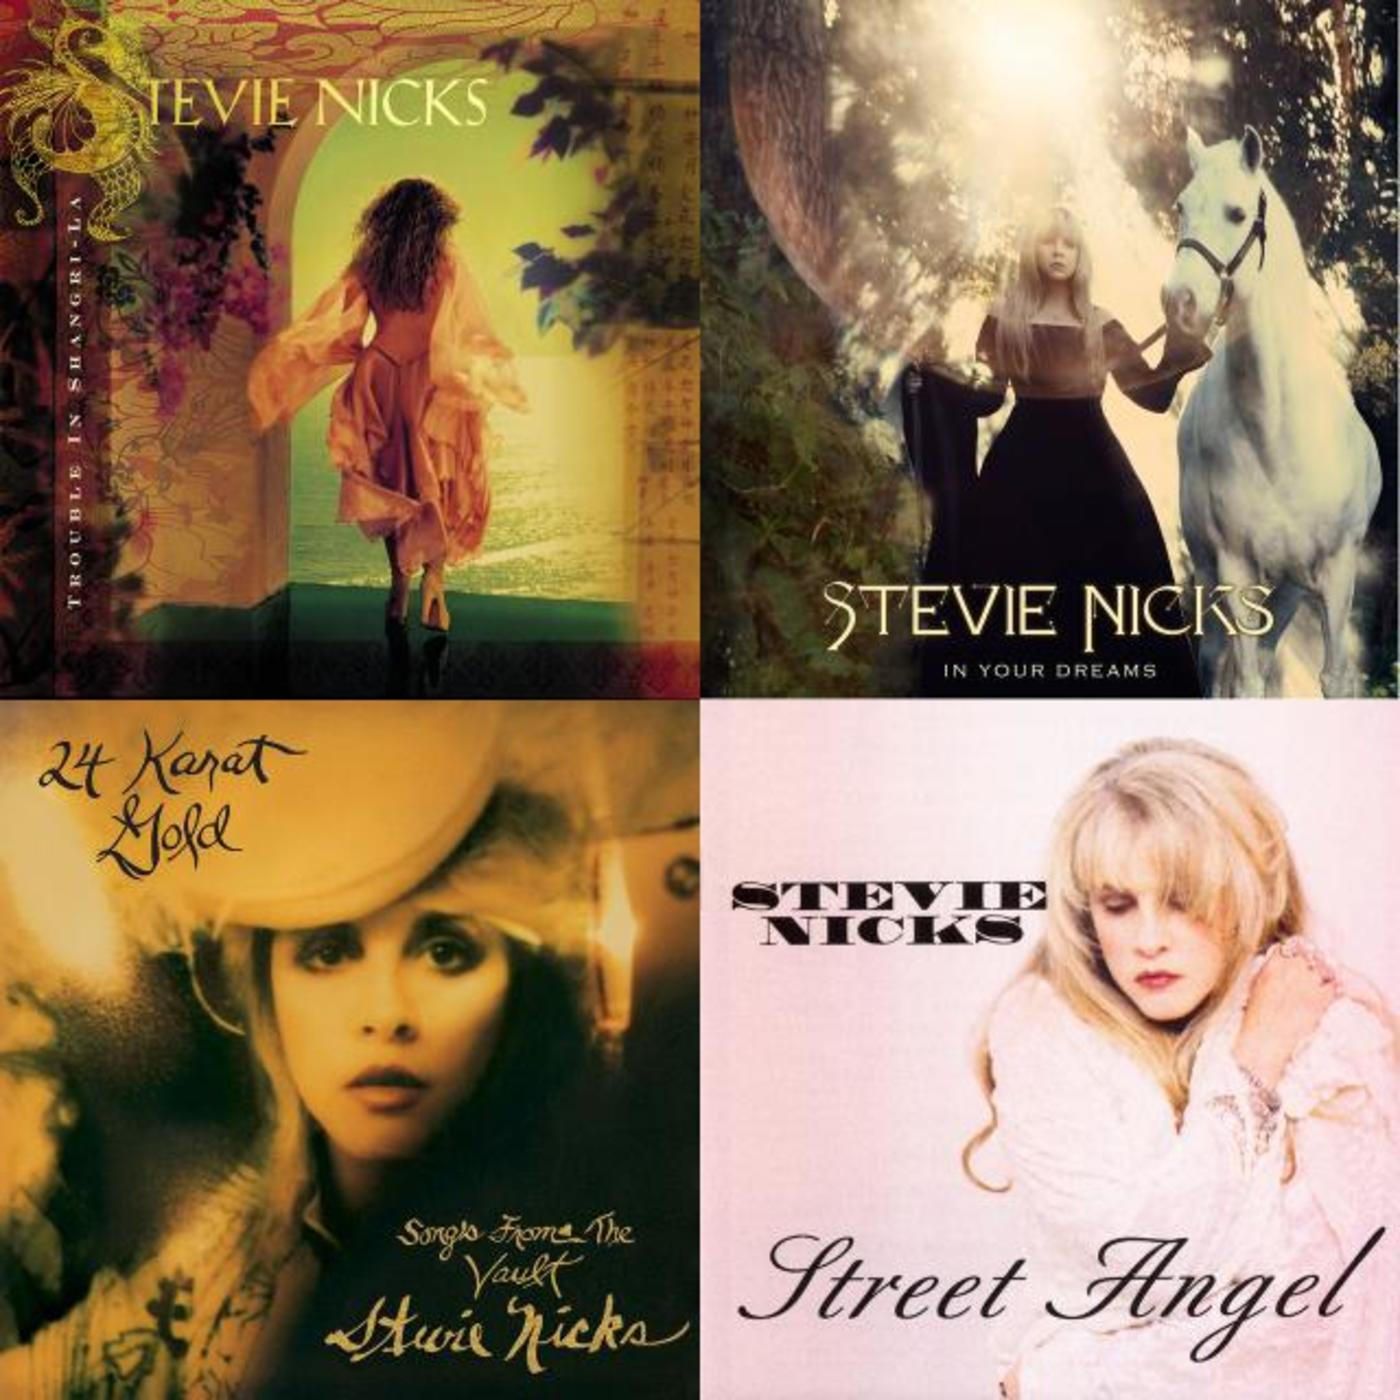 Stevie Nicks Complete Discography